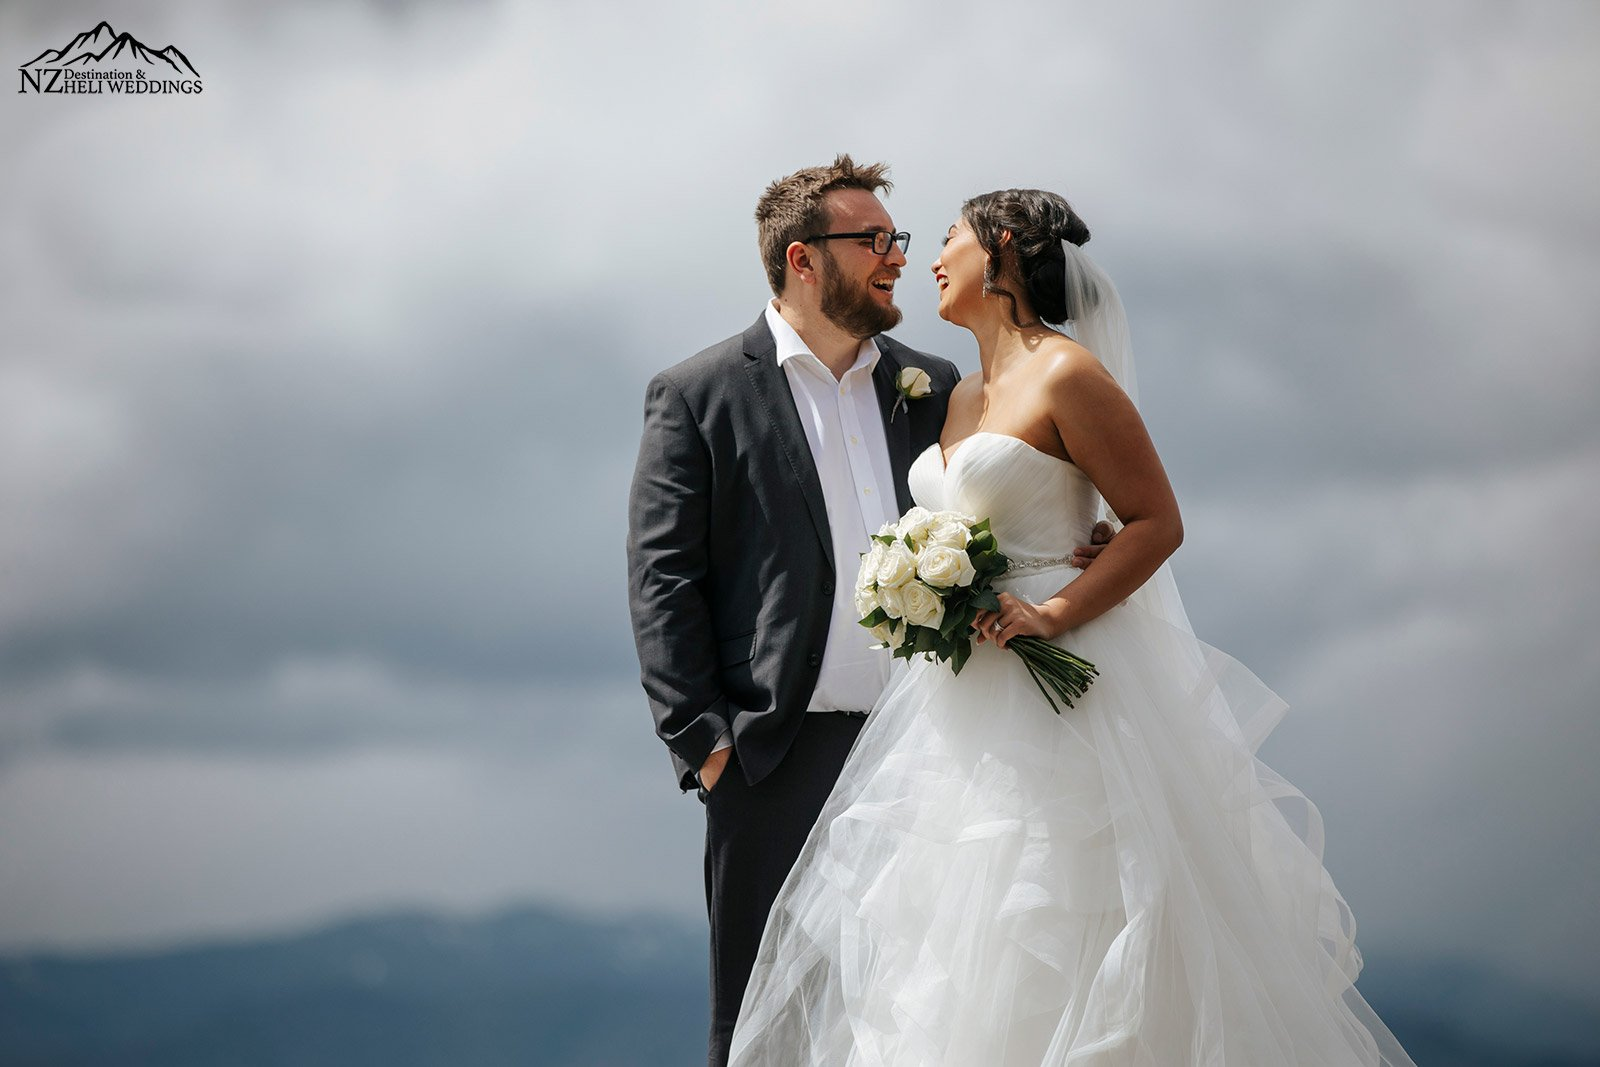 Heli Wedding Photography on The Ledge In Queenstown